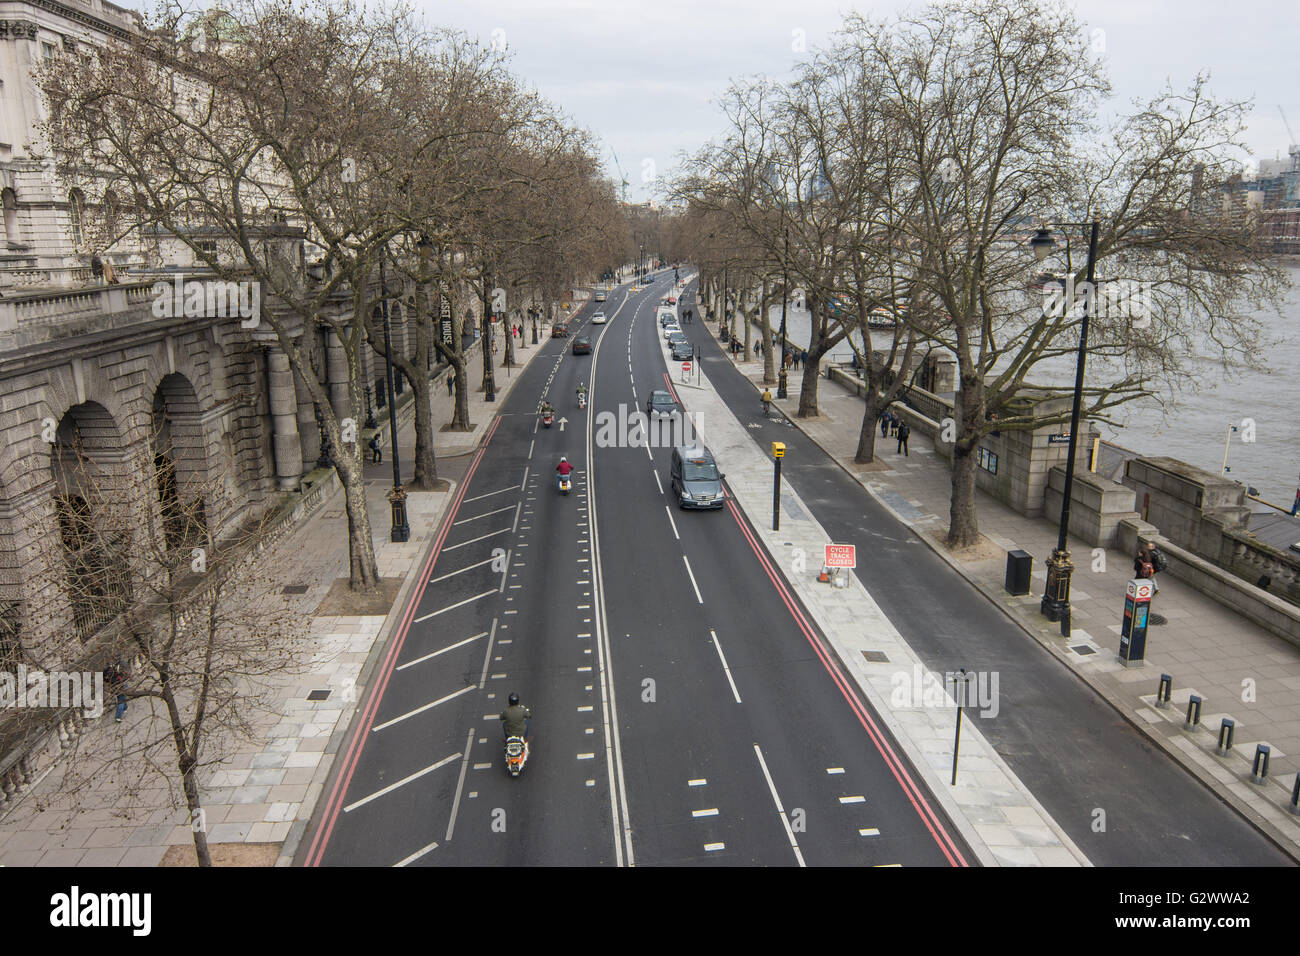 London Embankment,  Road by thames - Stock Image